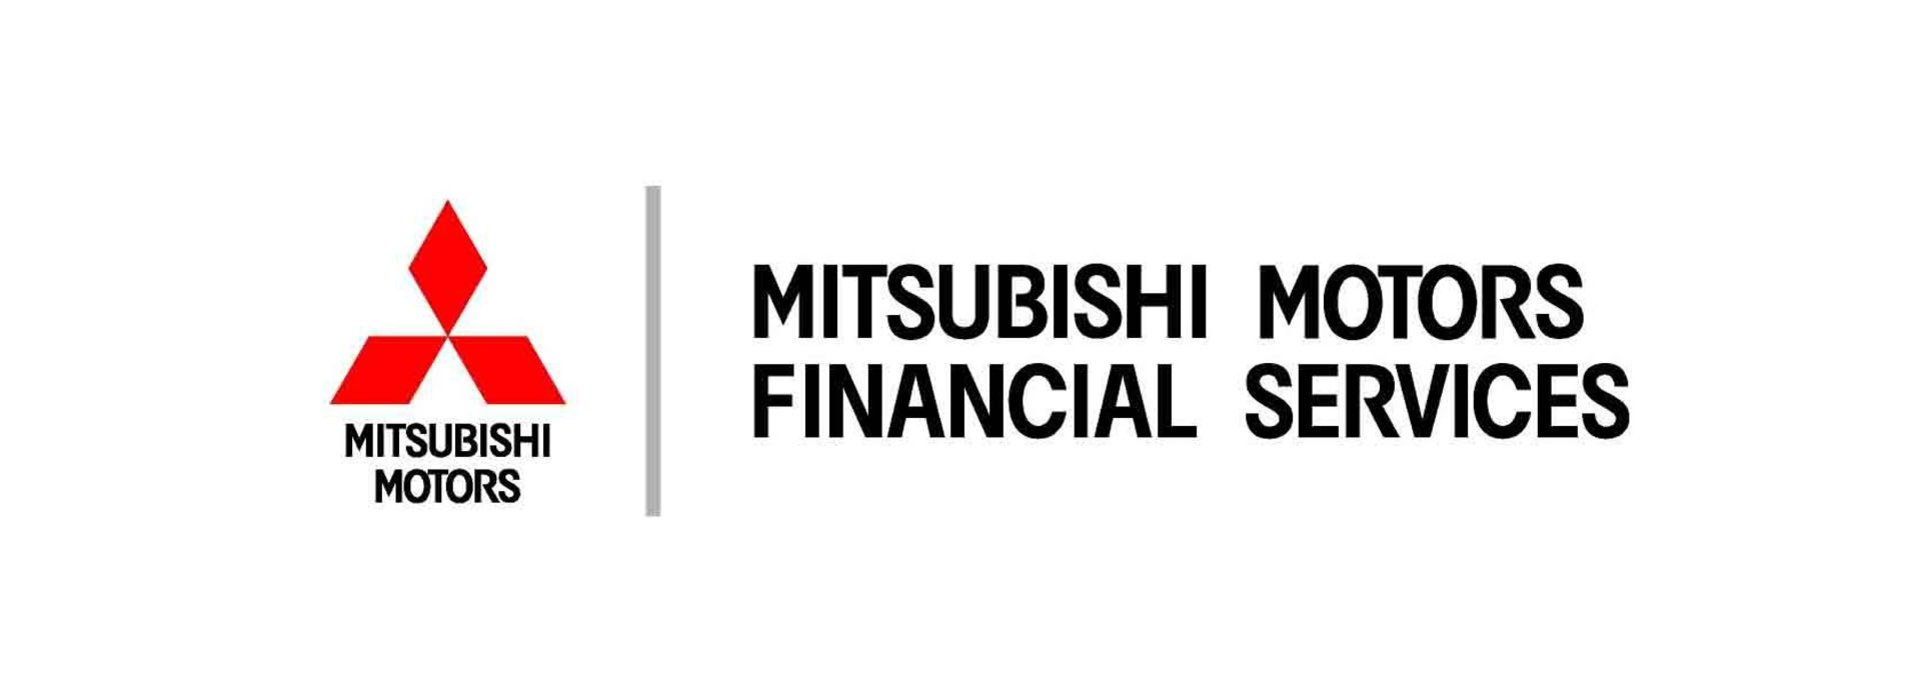 RamseyBrosMitsubishi-Financial Services